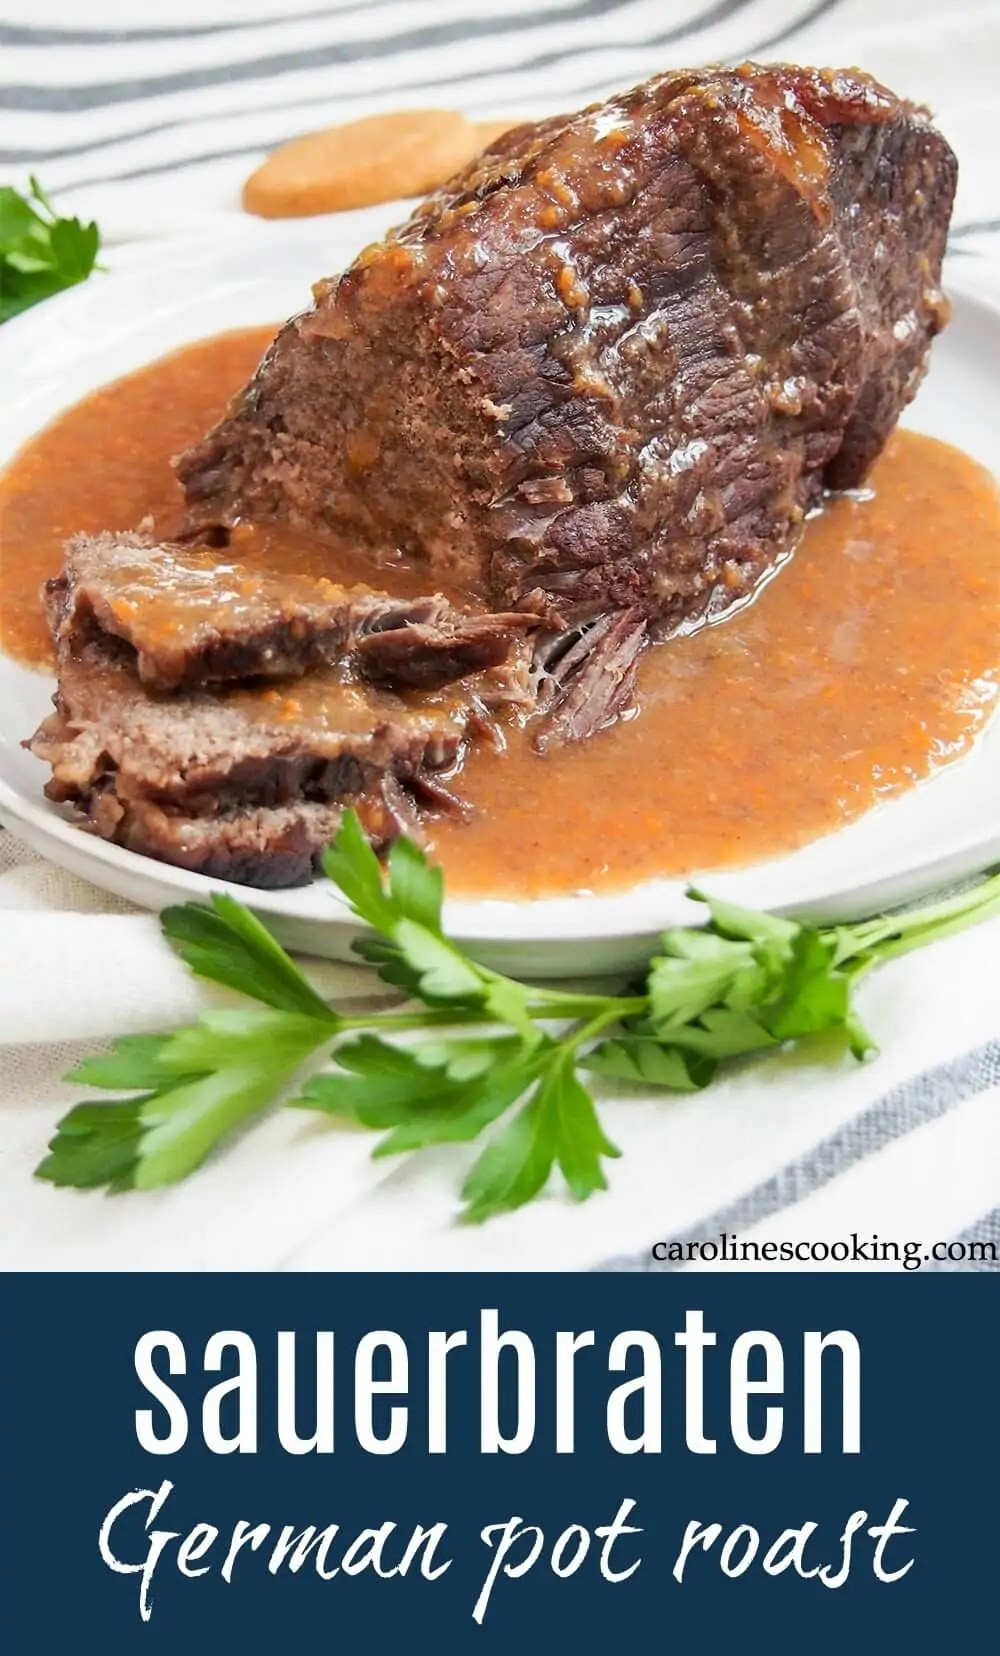 Sauerbraten is far from your typical pot roast, though it's might be described as one. This traditional German dish takes a bit more prep, but there's such depth of flavor from the spiced wine and vinegar-based marinade and the final touch adds a special little something! Comforting deliciousness. #germanfood #potroast #sauerbraten #oktoberfest